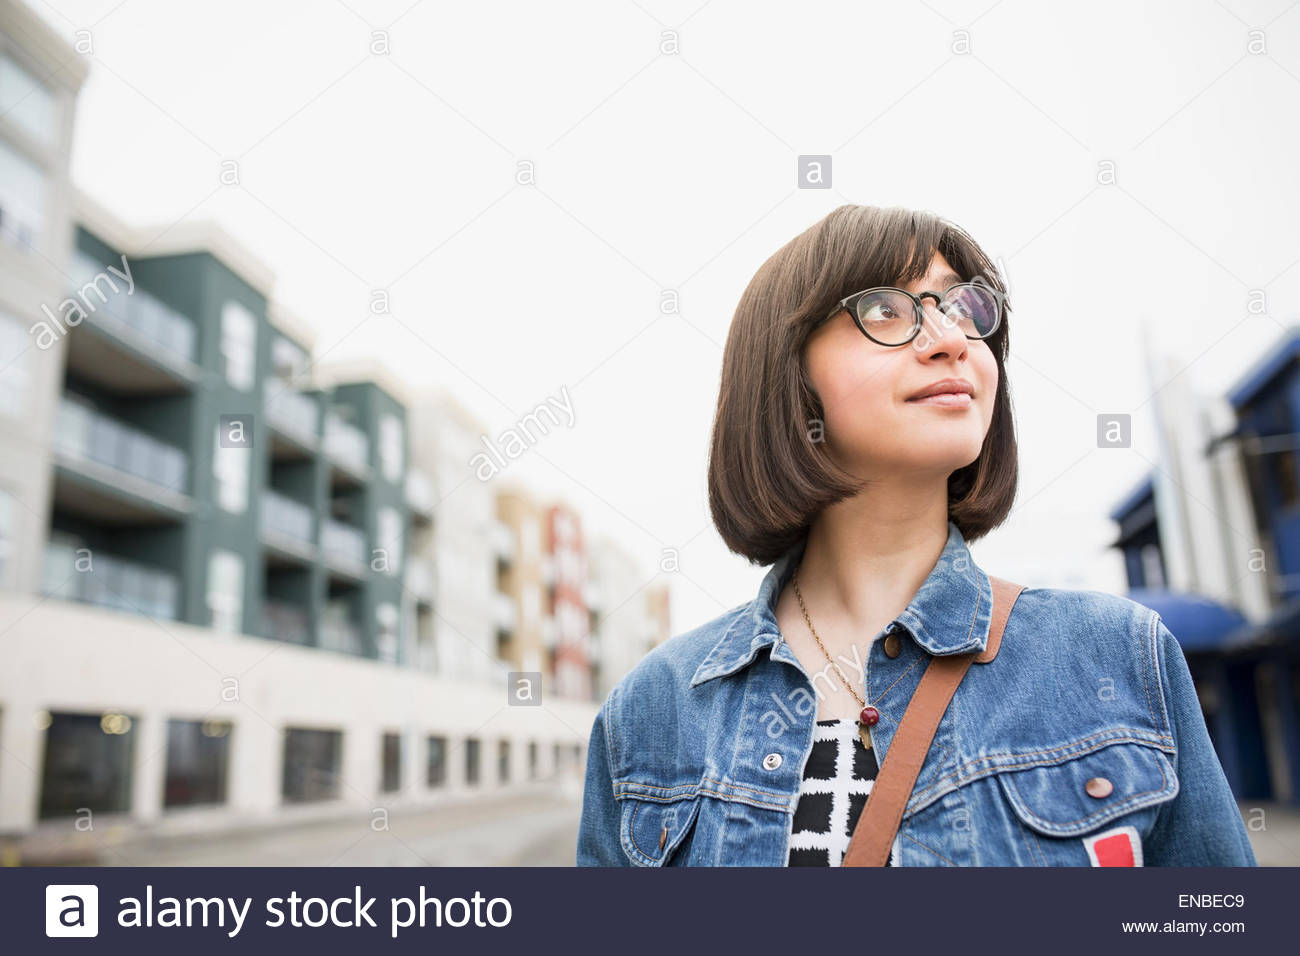 Woman in denim jacket on urban street - Stock Image